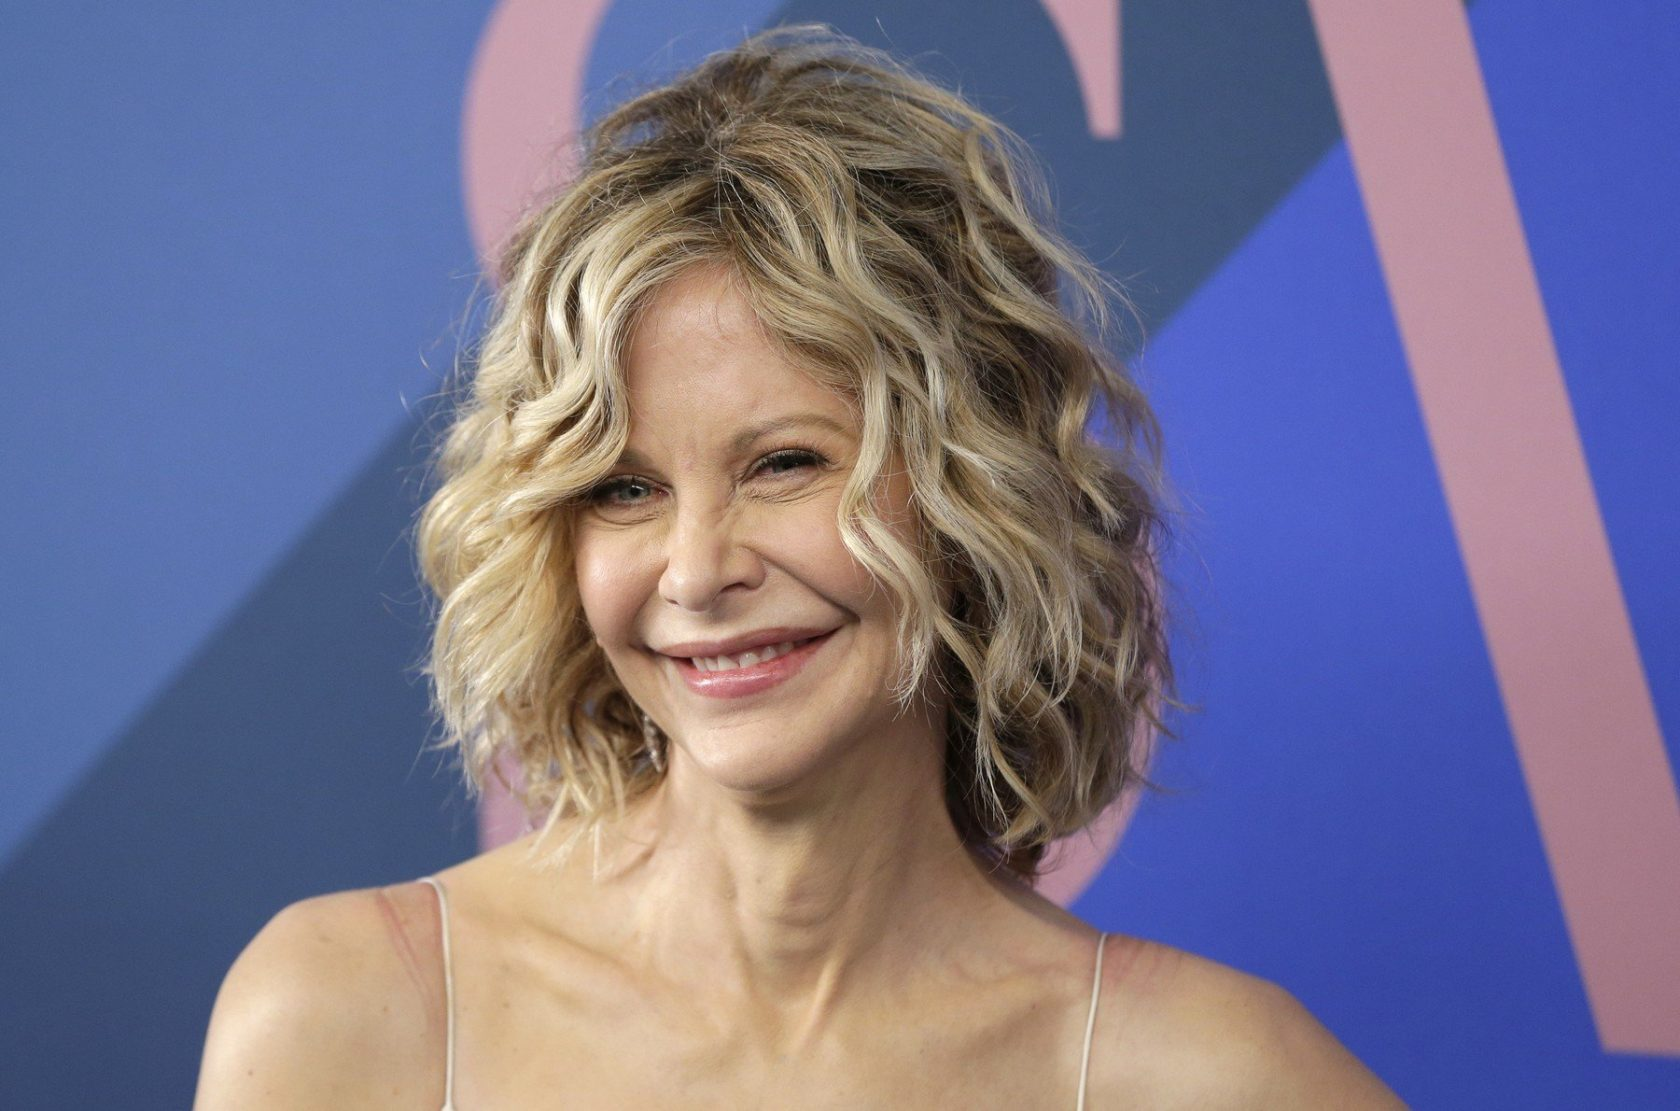 Meg Ryan arrives on the red carpet at the 2017 CFDA Fashion Awards at the Hammerstein Ballroom on June 5, 2017 in New York City. Photo by /UPI, Image: 335216312, License: Rights-managed, Restrictions: , Model Release: no, Credit line: Profimedia, UPI